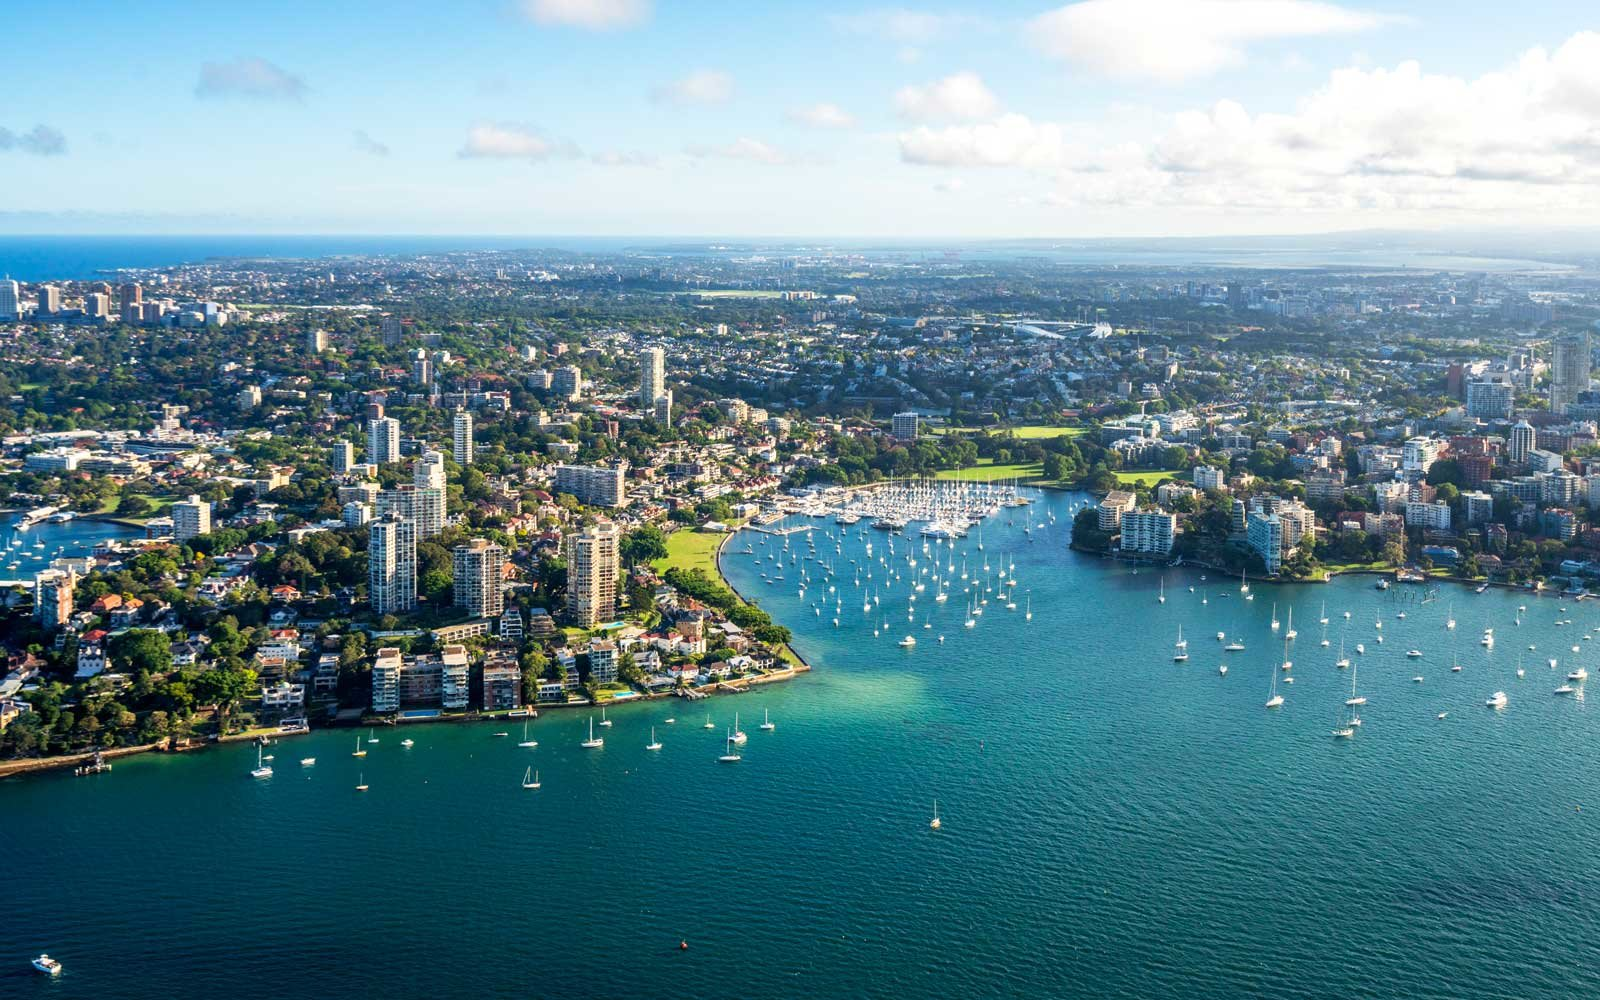 The 2018 World S Best Cities In Australia New Zealand And South Pacific Travel Leisure